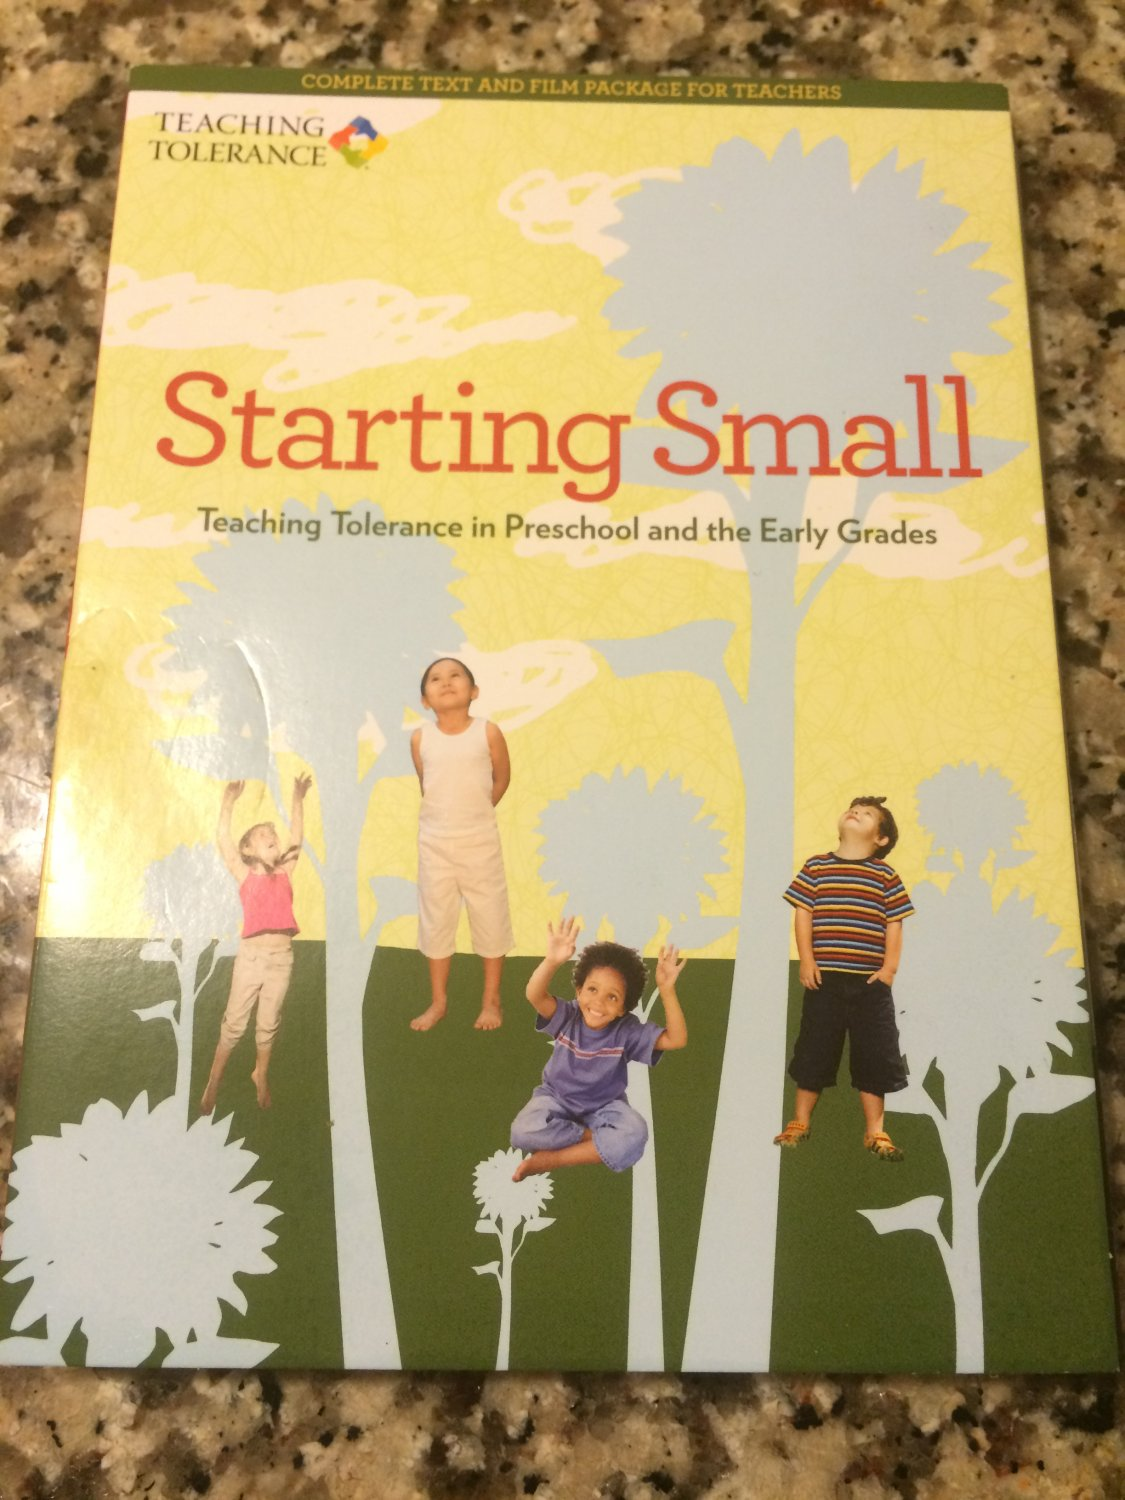 Starting Small - Teaching Tolerance in Preschool and the Early Grades